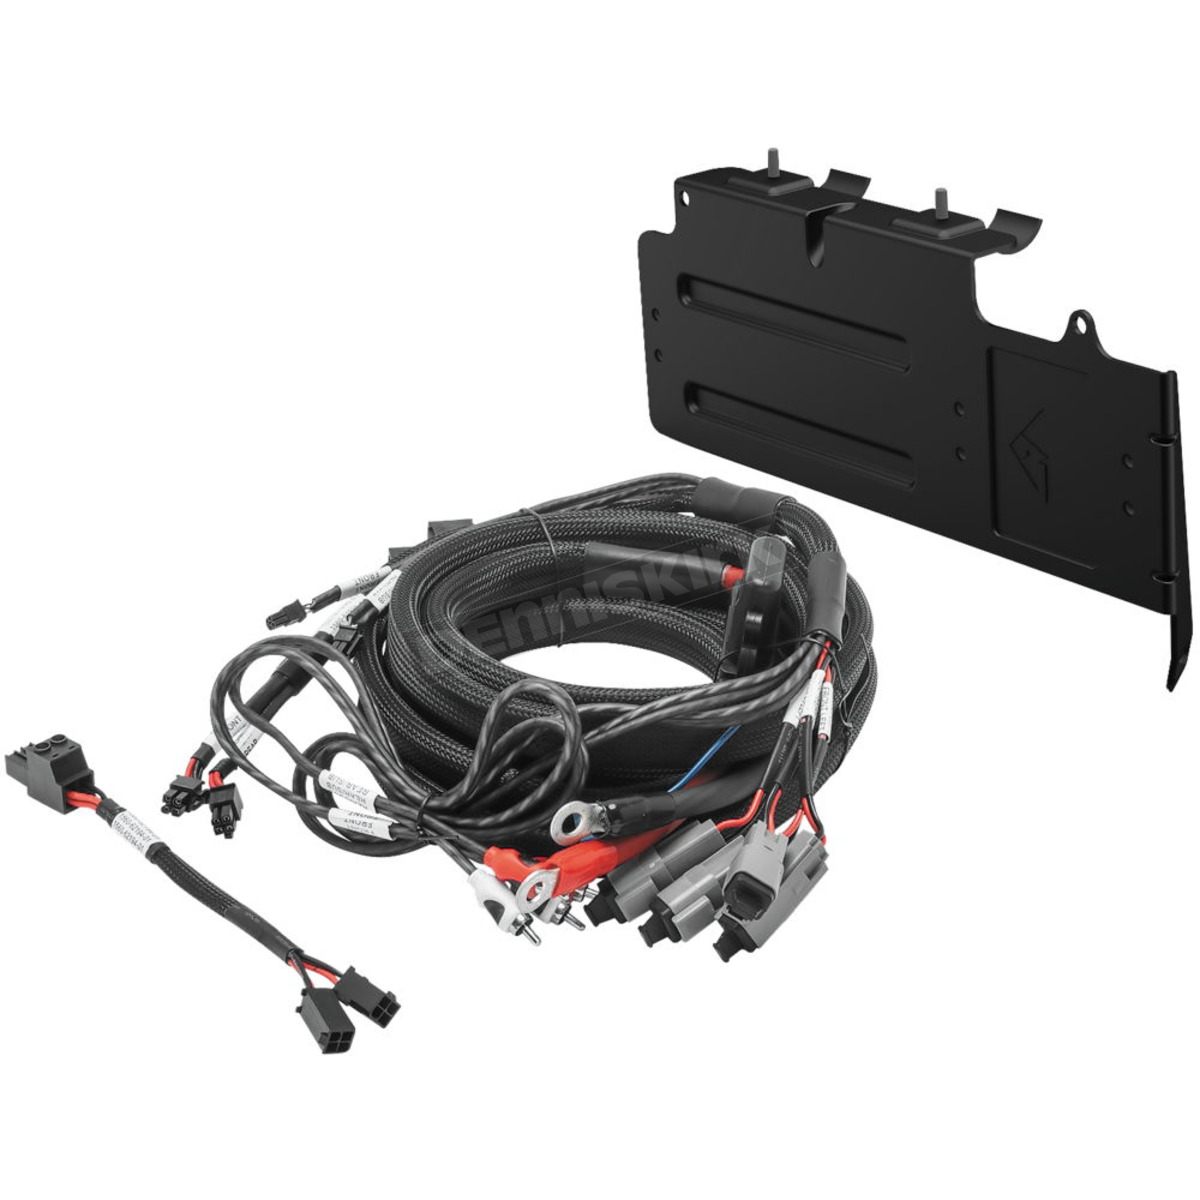 hight resolution of rockford fosgate 4 awg wire harness rfx3 k4 dennis kirk nissan frontier rockford fosgate speaker diagram rockford fosgate wiring harness